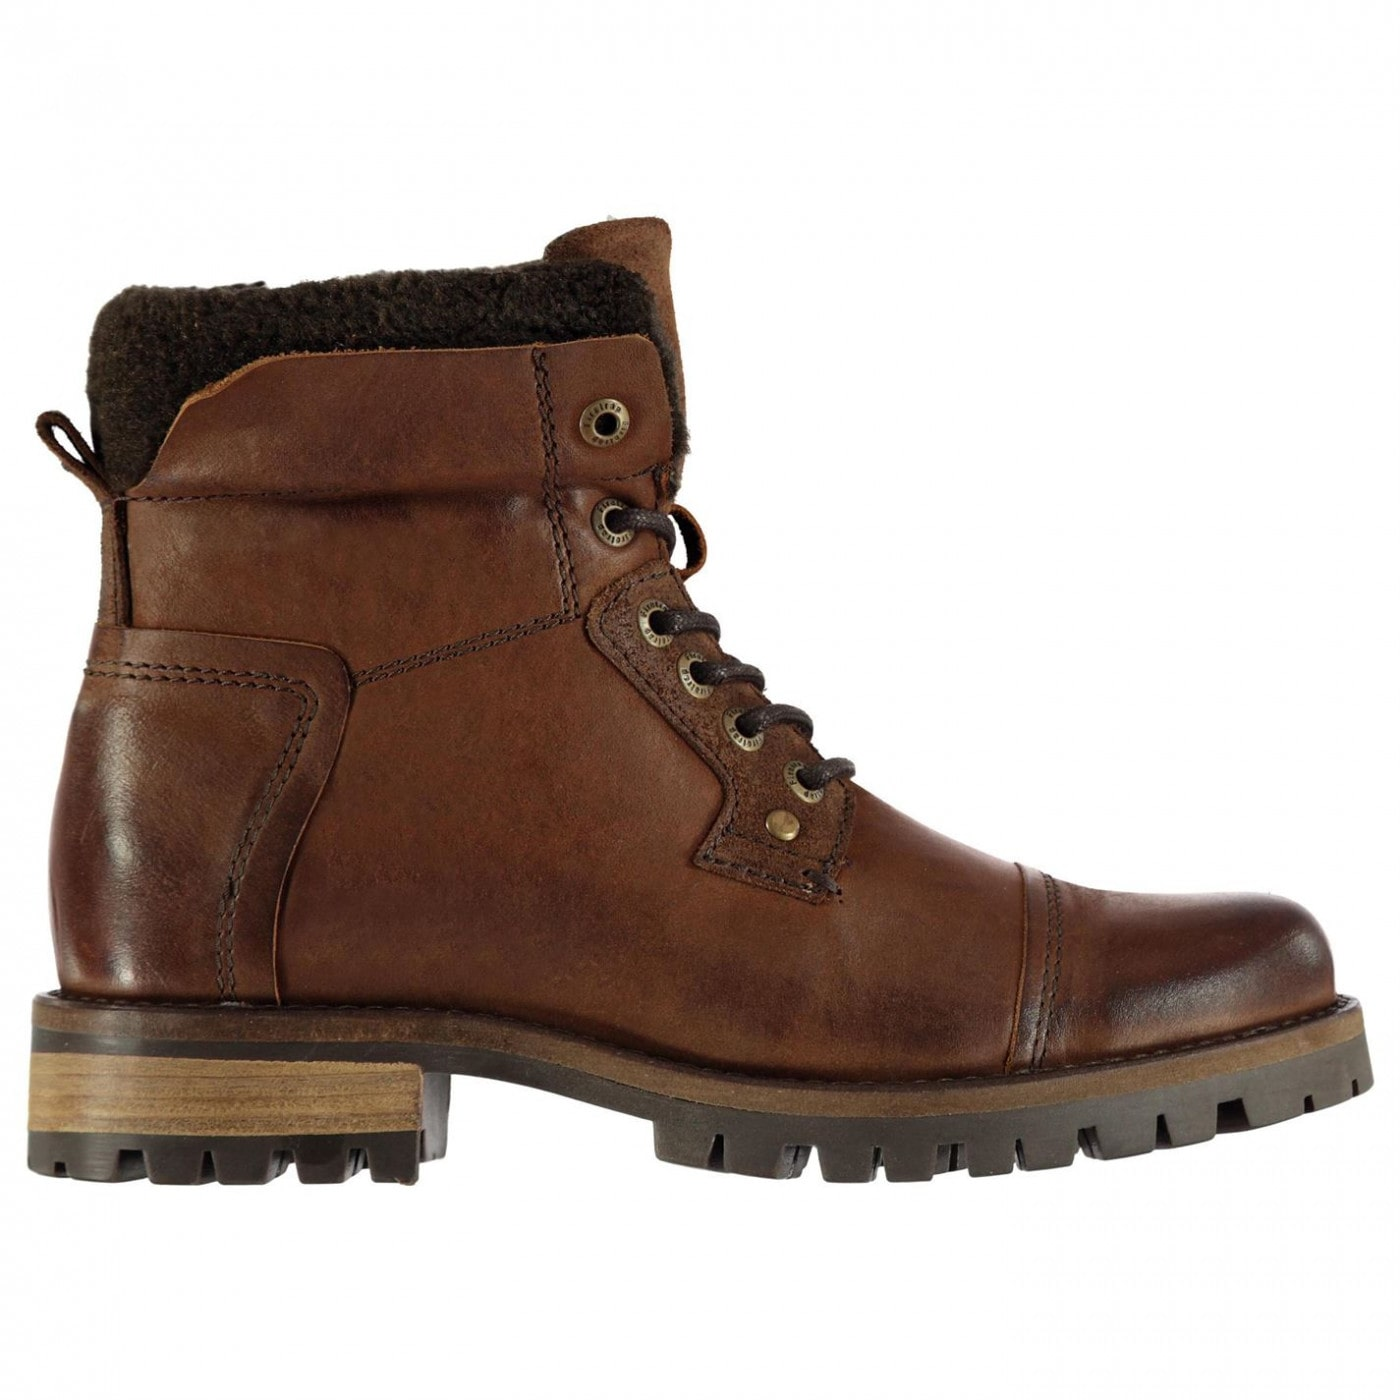 Firetrap Hays Ladies Boots